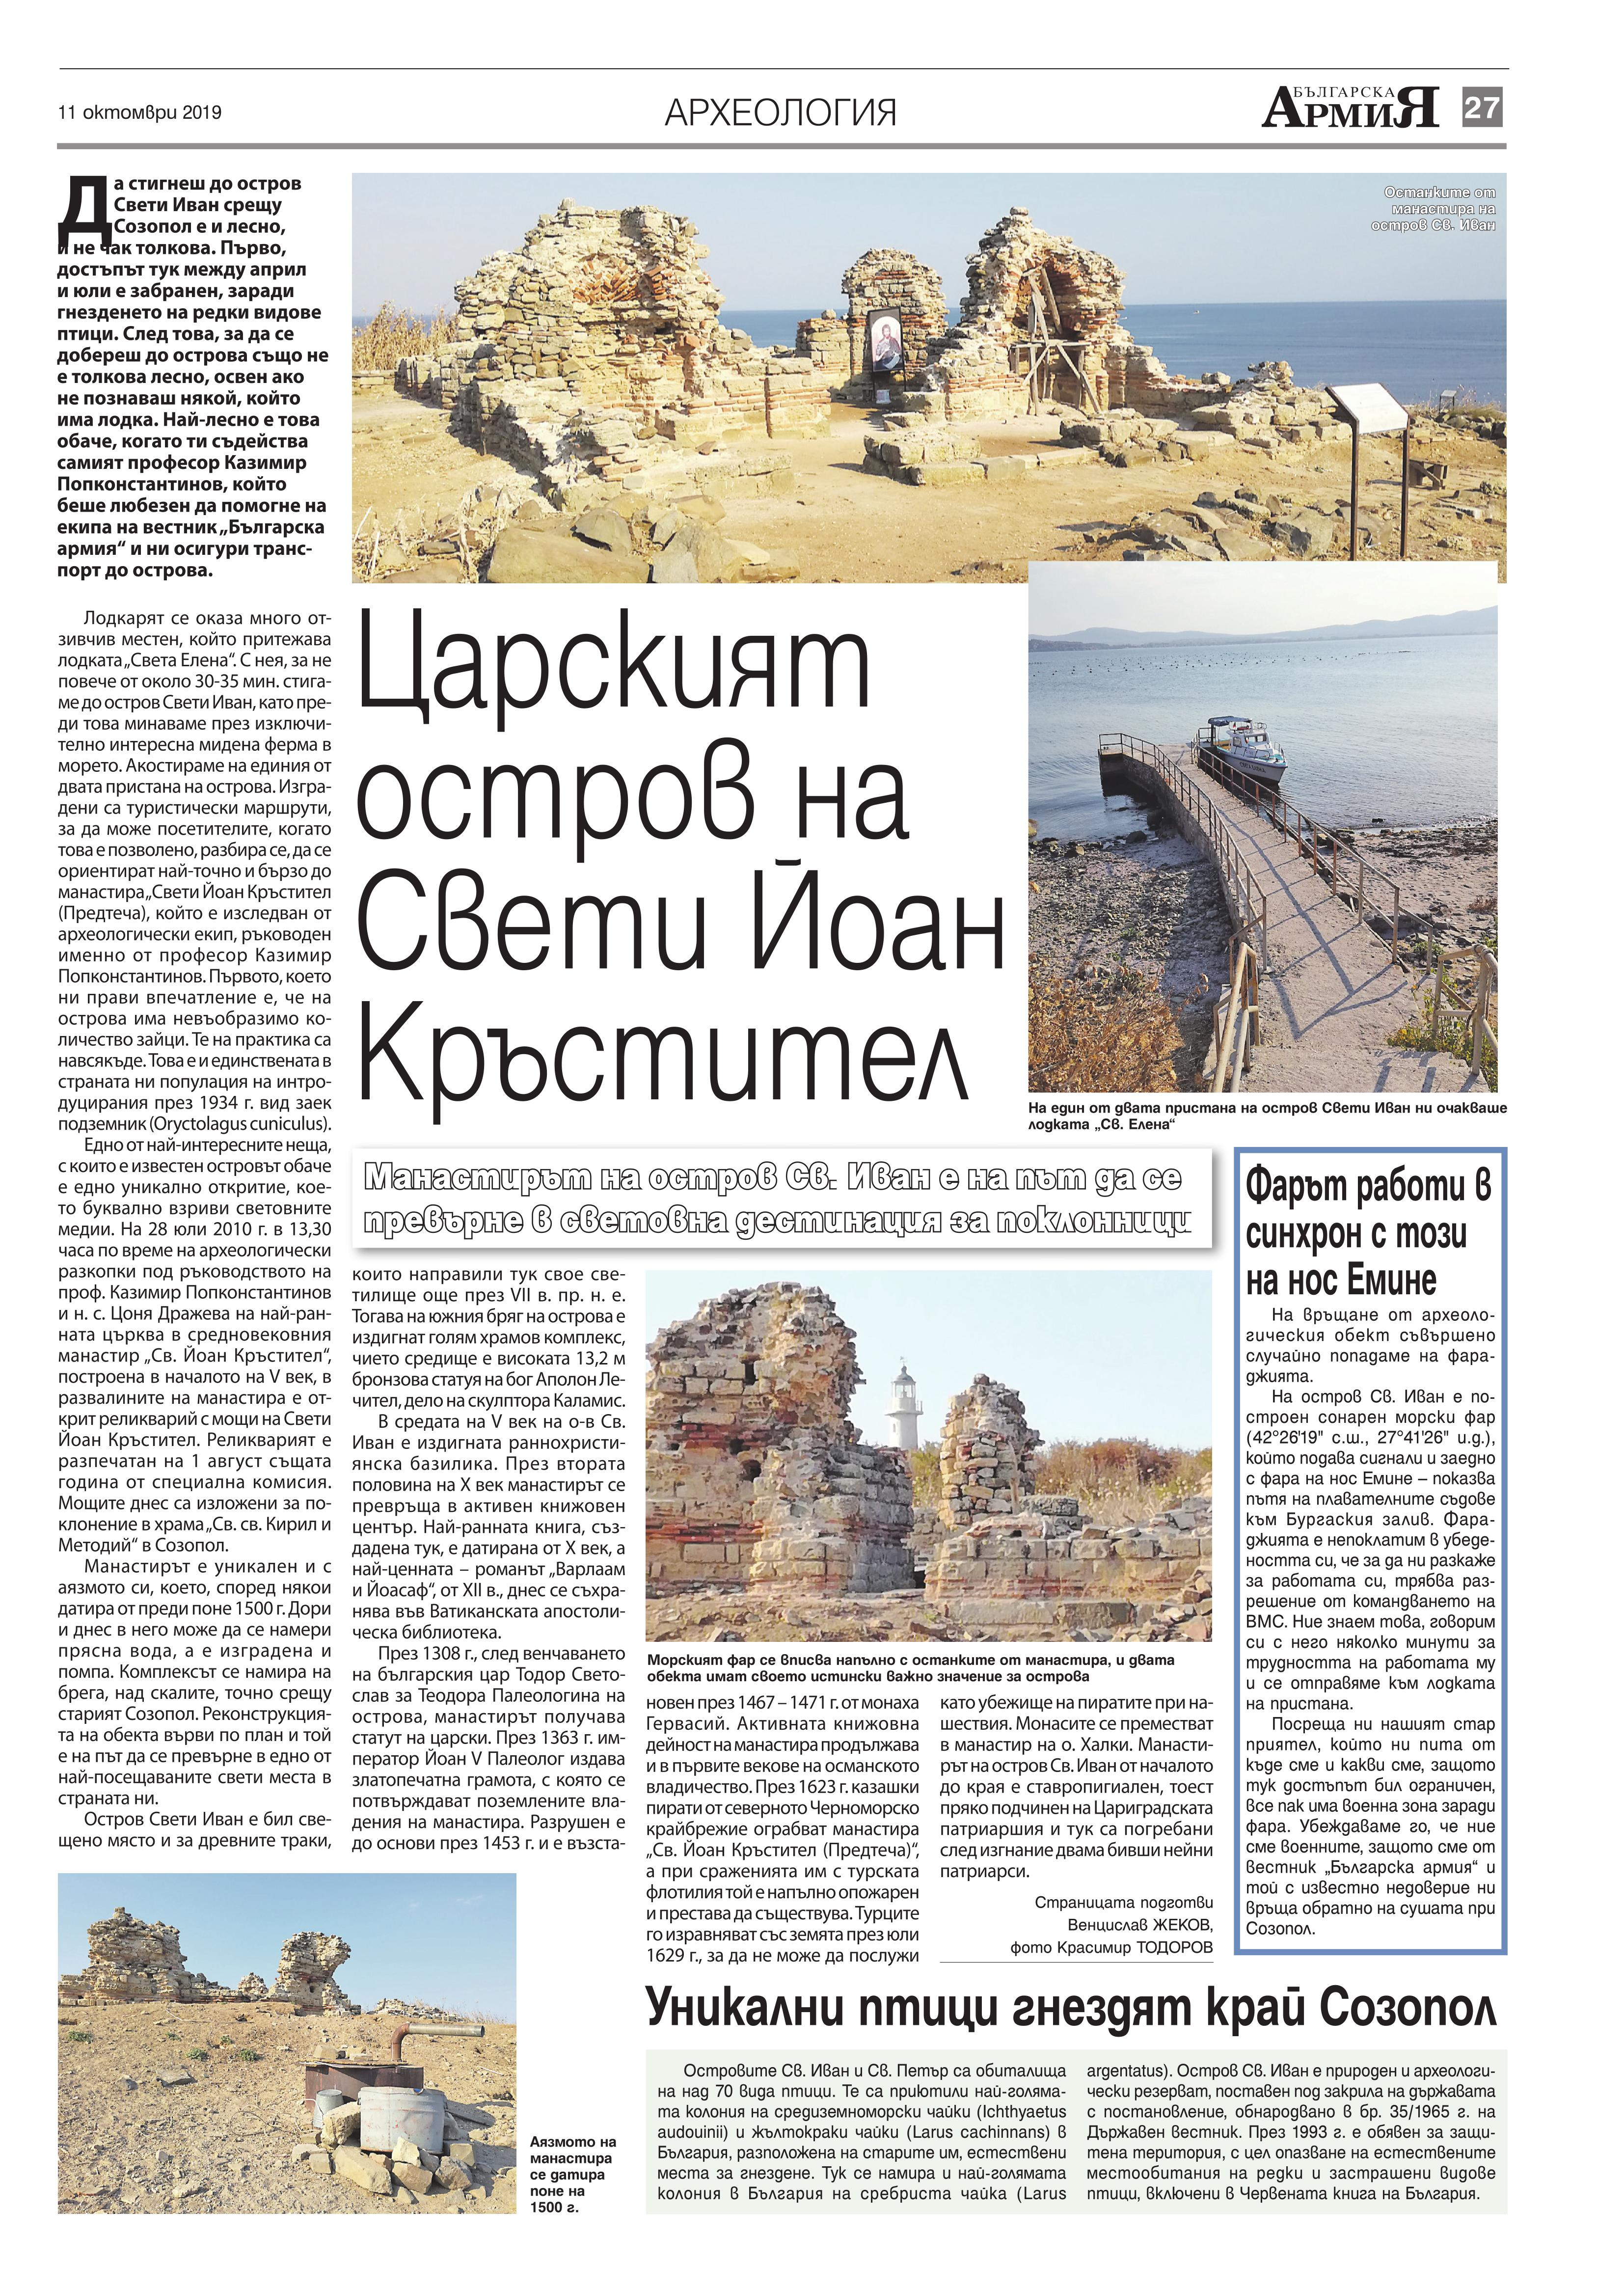 https://www.armymedia.bg/wp-content/uploads/2015/06/27.page1_-92.jpg